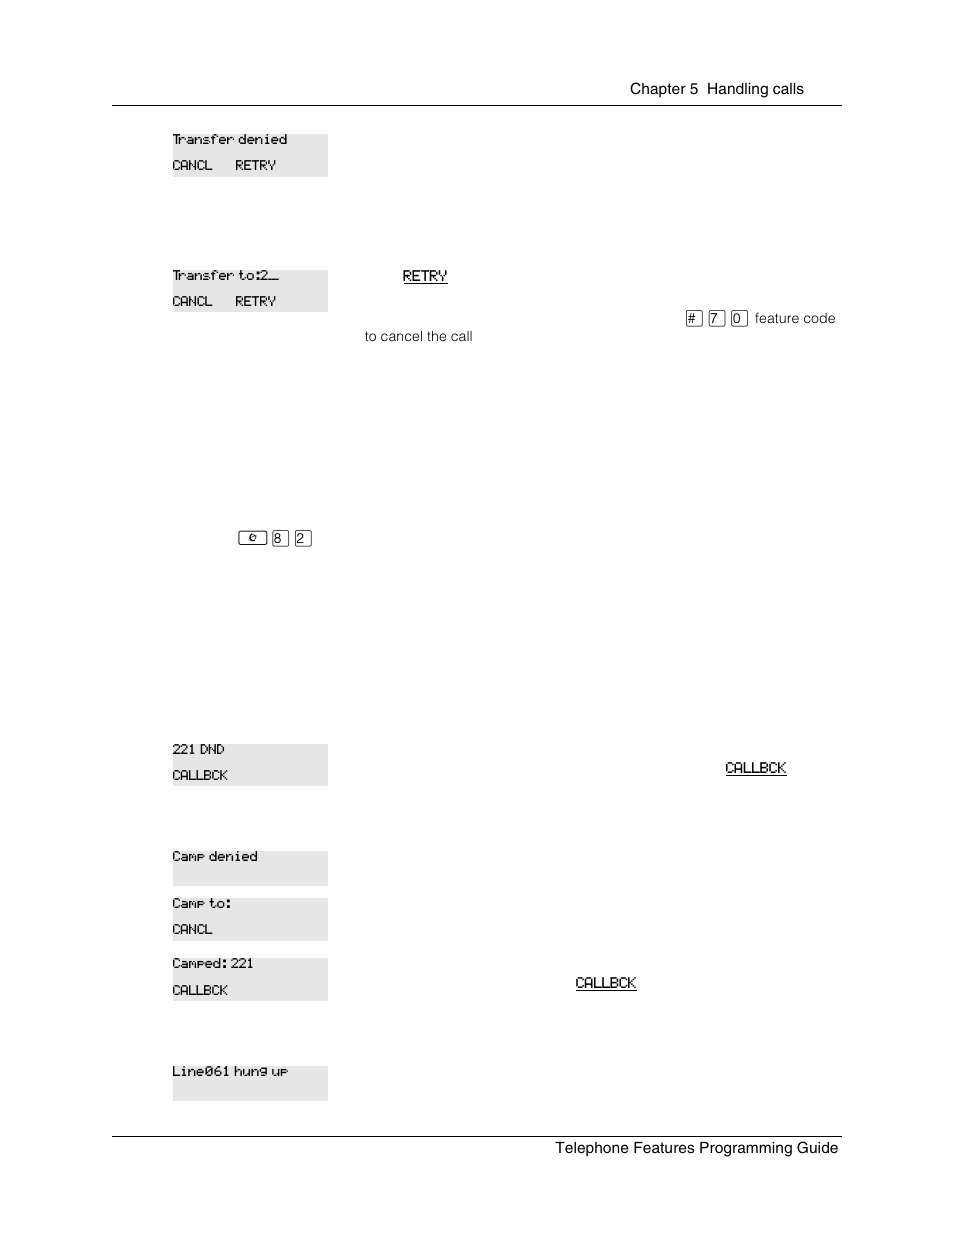 Nortel T7316 Owner's Manual Related Keywords & Suggestions